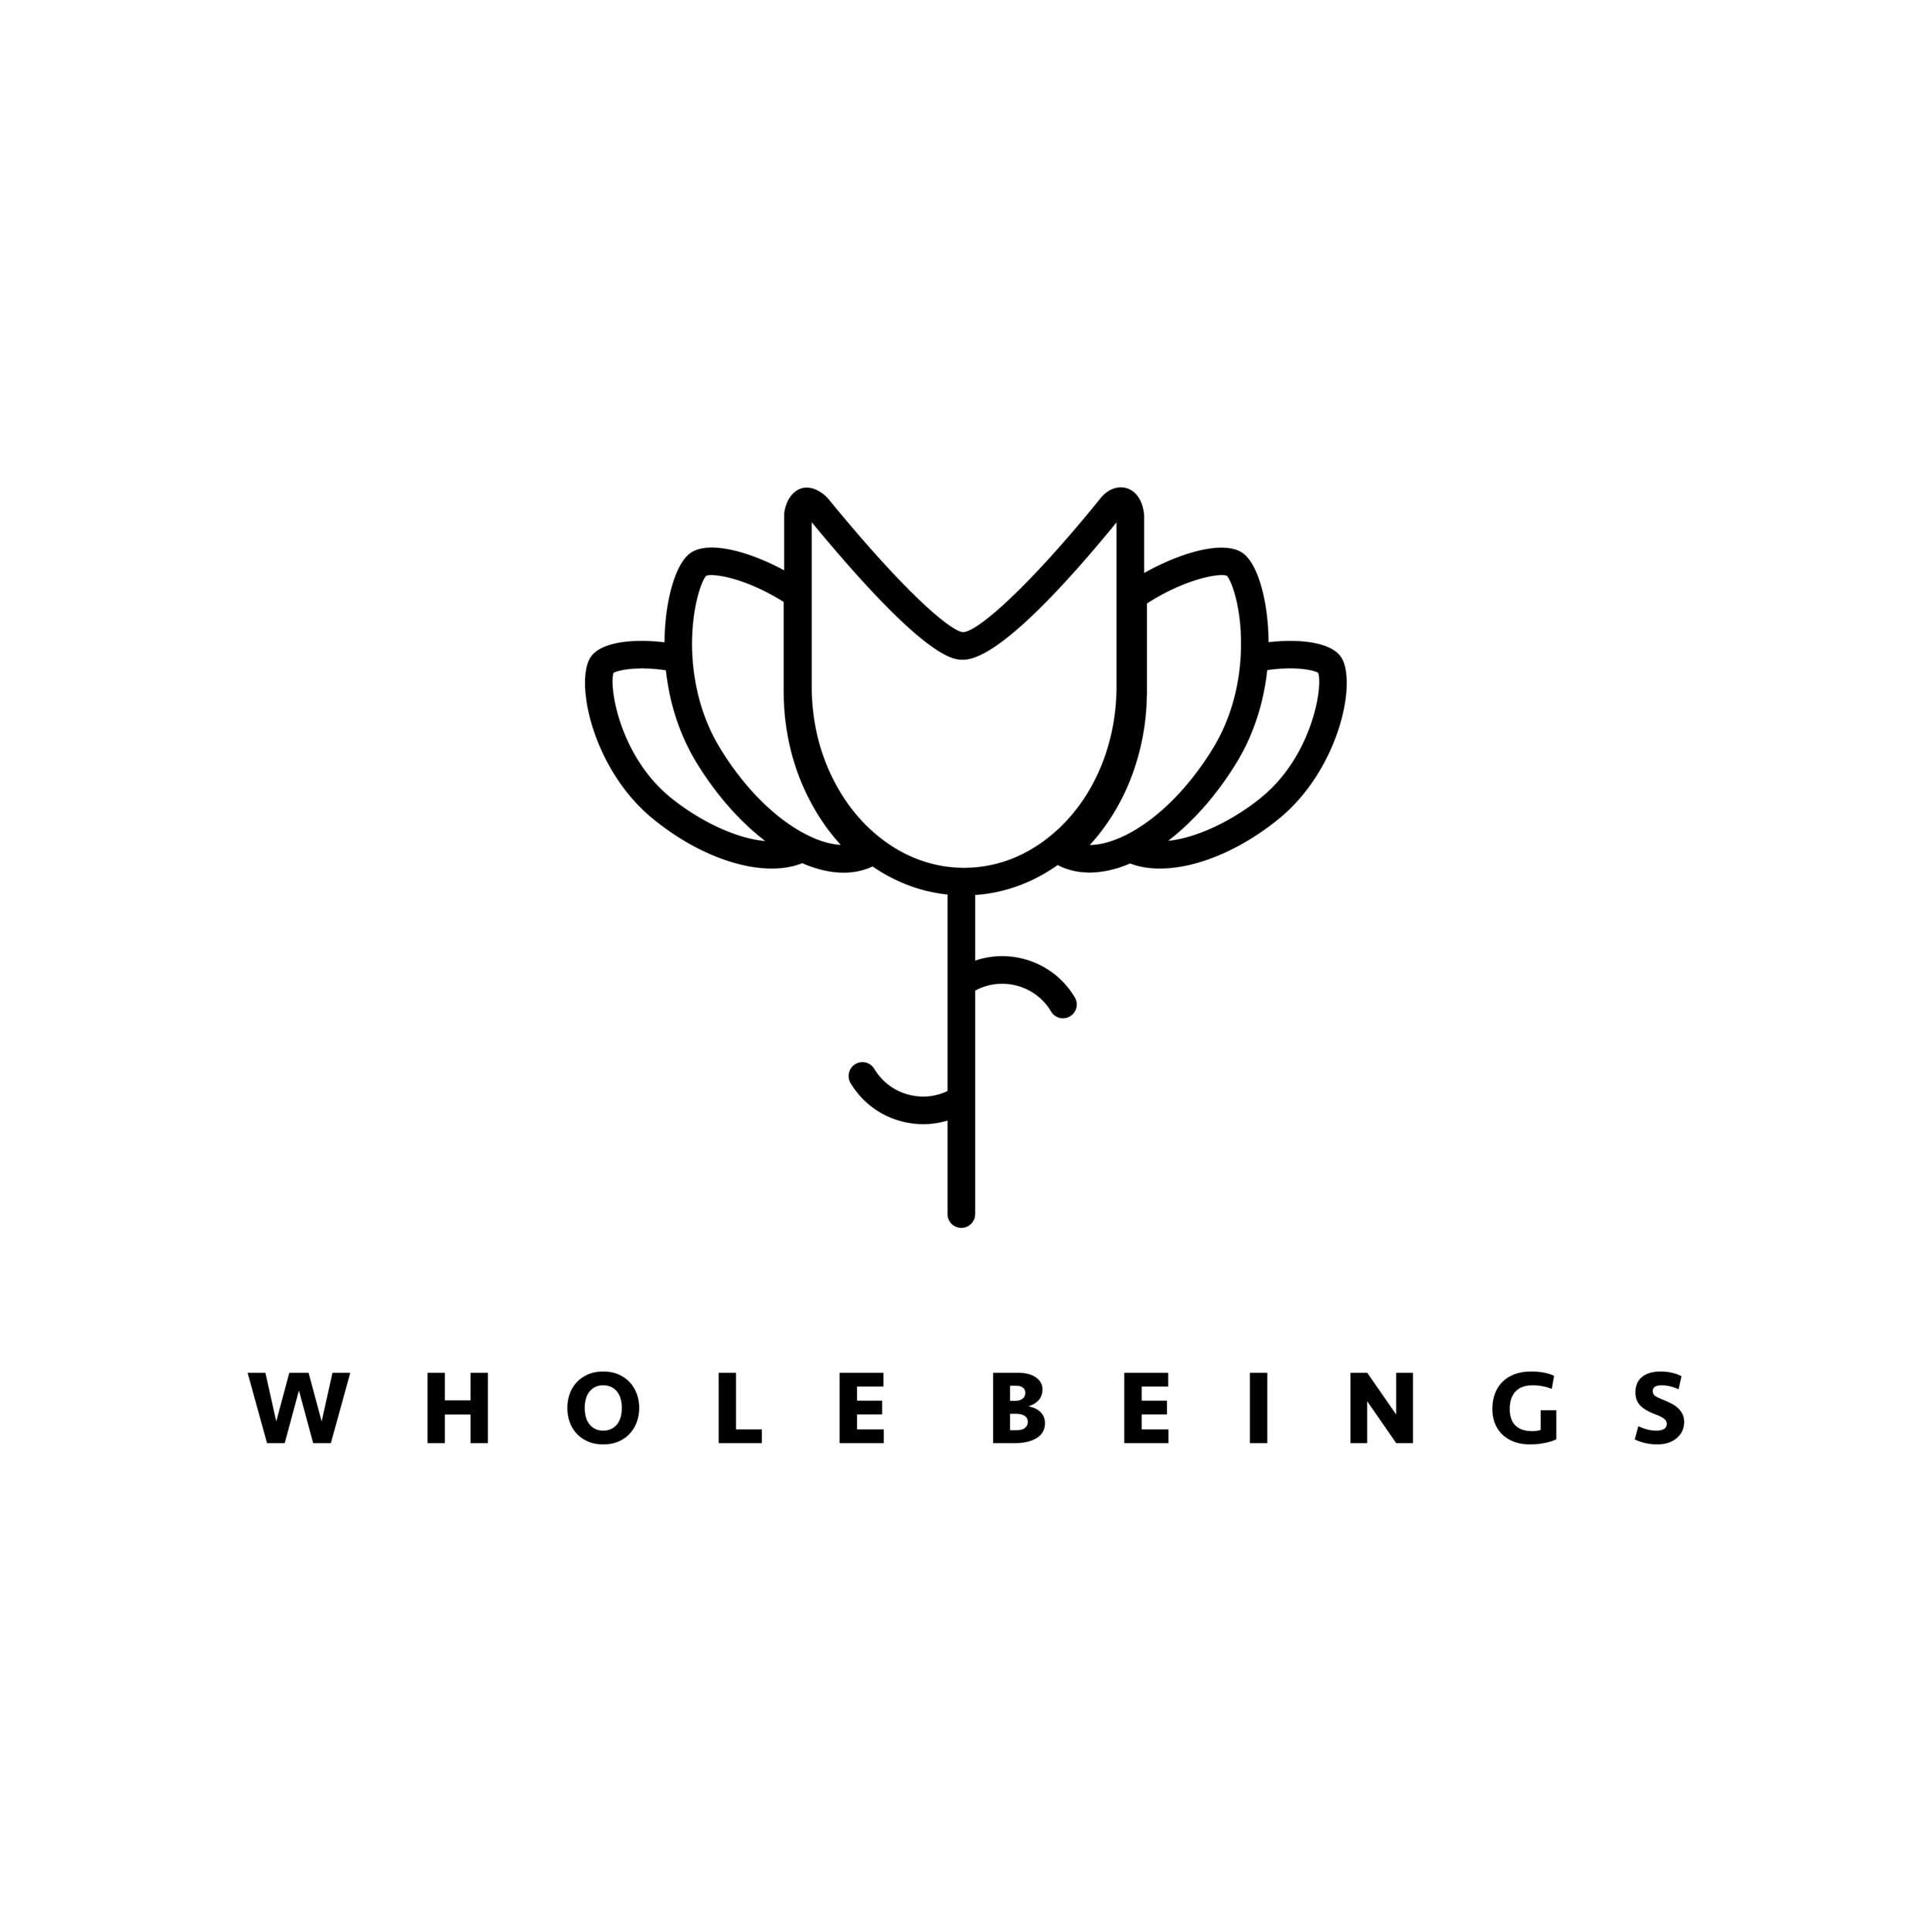 A logo that represented the ethos of the collective was created, nurturing the mind, body and spirit of every child through a sprout to lotus icon representing the growth of a child. - This logo has allowed the brand to be recognised by their icon alone, creating a true visual and market presence for the company.